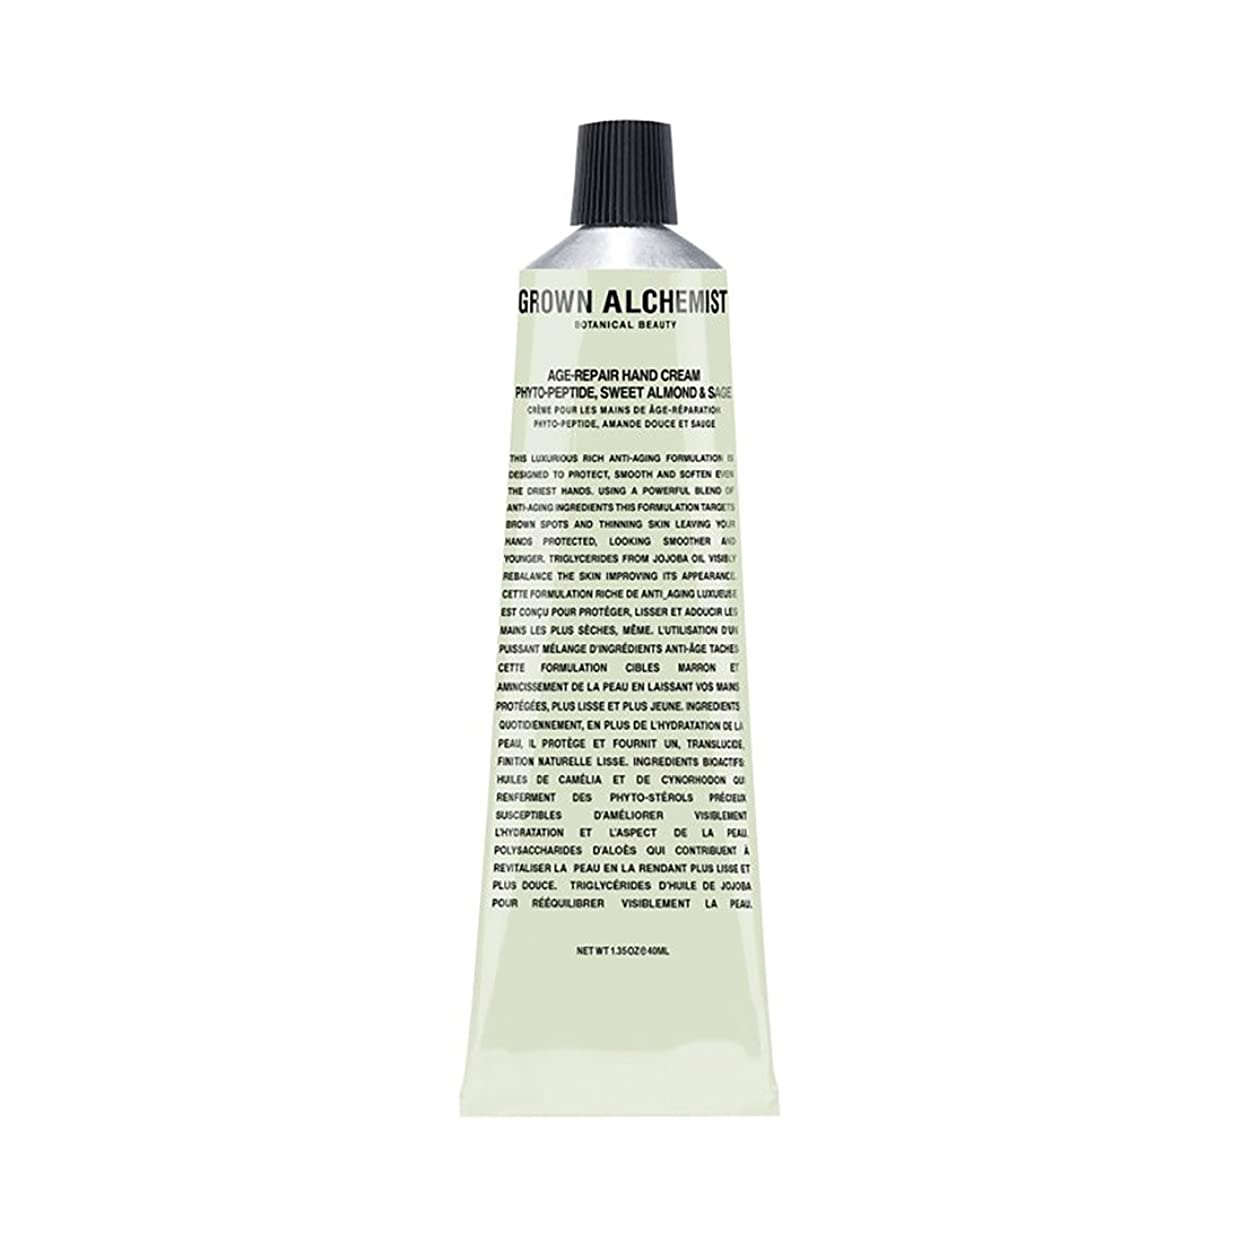 セラフ却下する威するGrown Alchemist Age-Repair Hand Cream - Phyto-Peptide, Sweet Almond & Sage 40ml/1.35oz並行輸入品